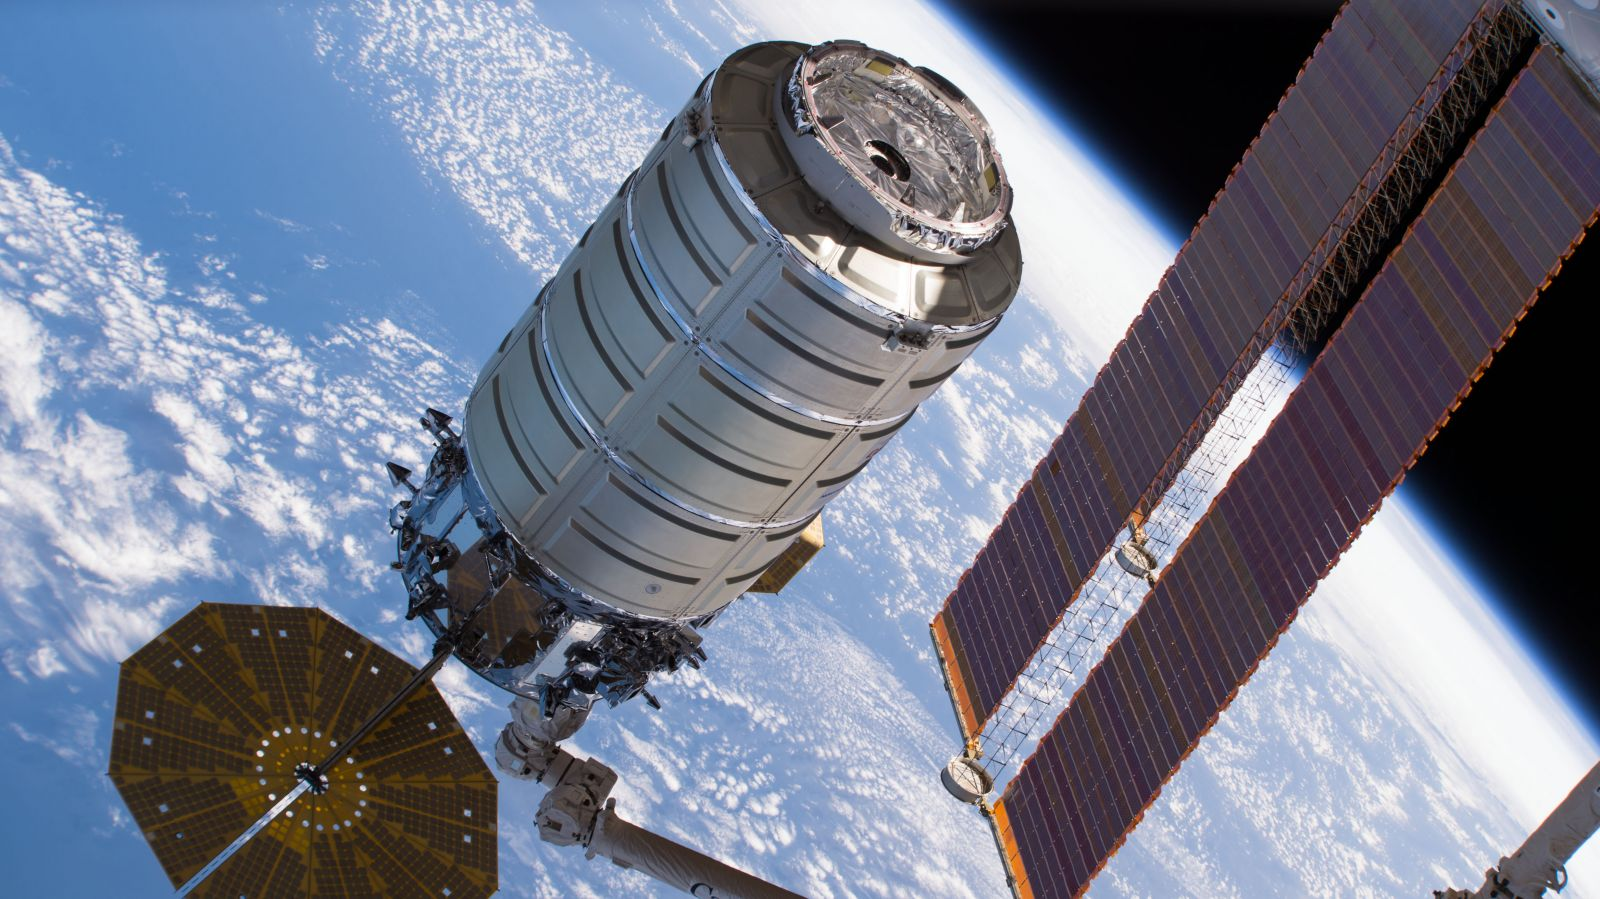 A file photo of a previous Cygnus being captured at the International Space Station. The NG-11 Cygnus arrived at the outpost on April 19, 2019. Photo Credit: NASA